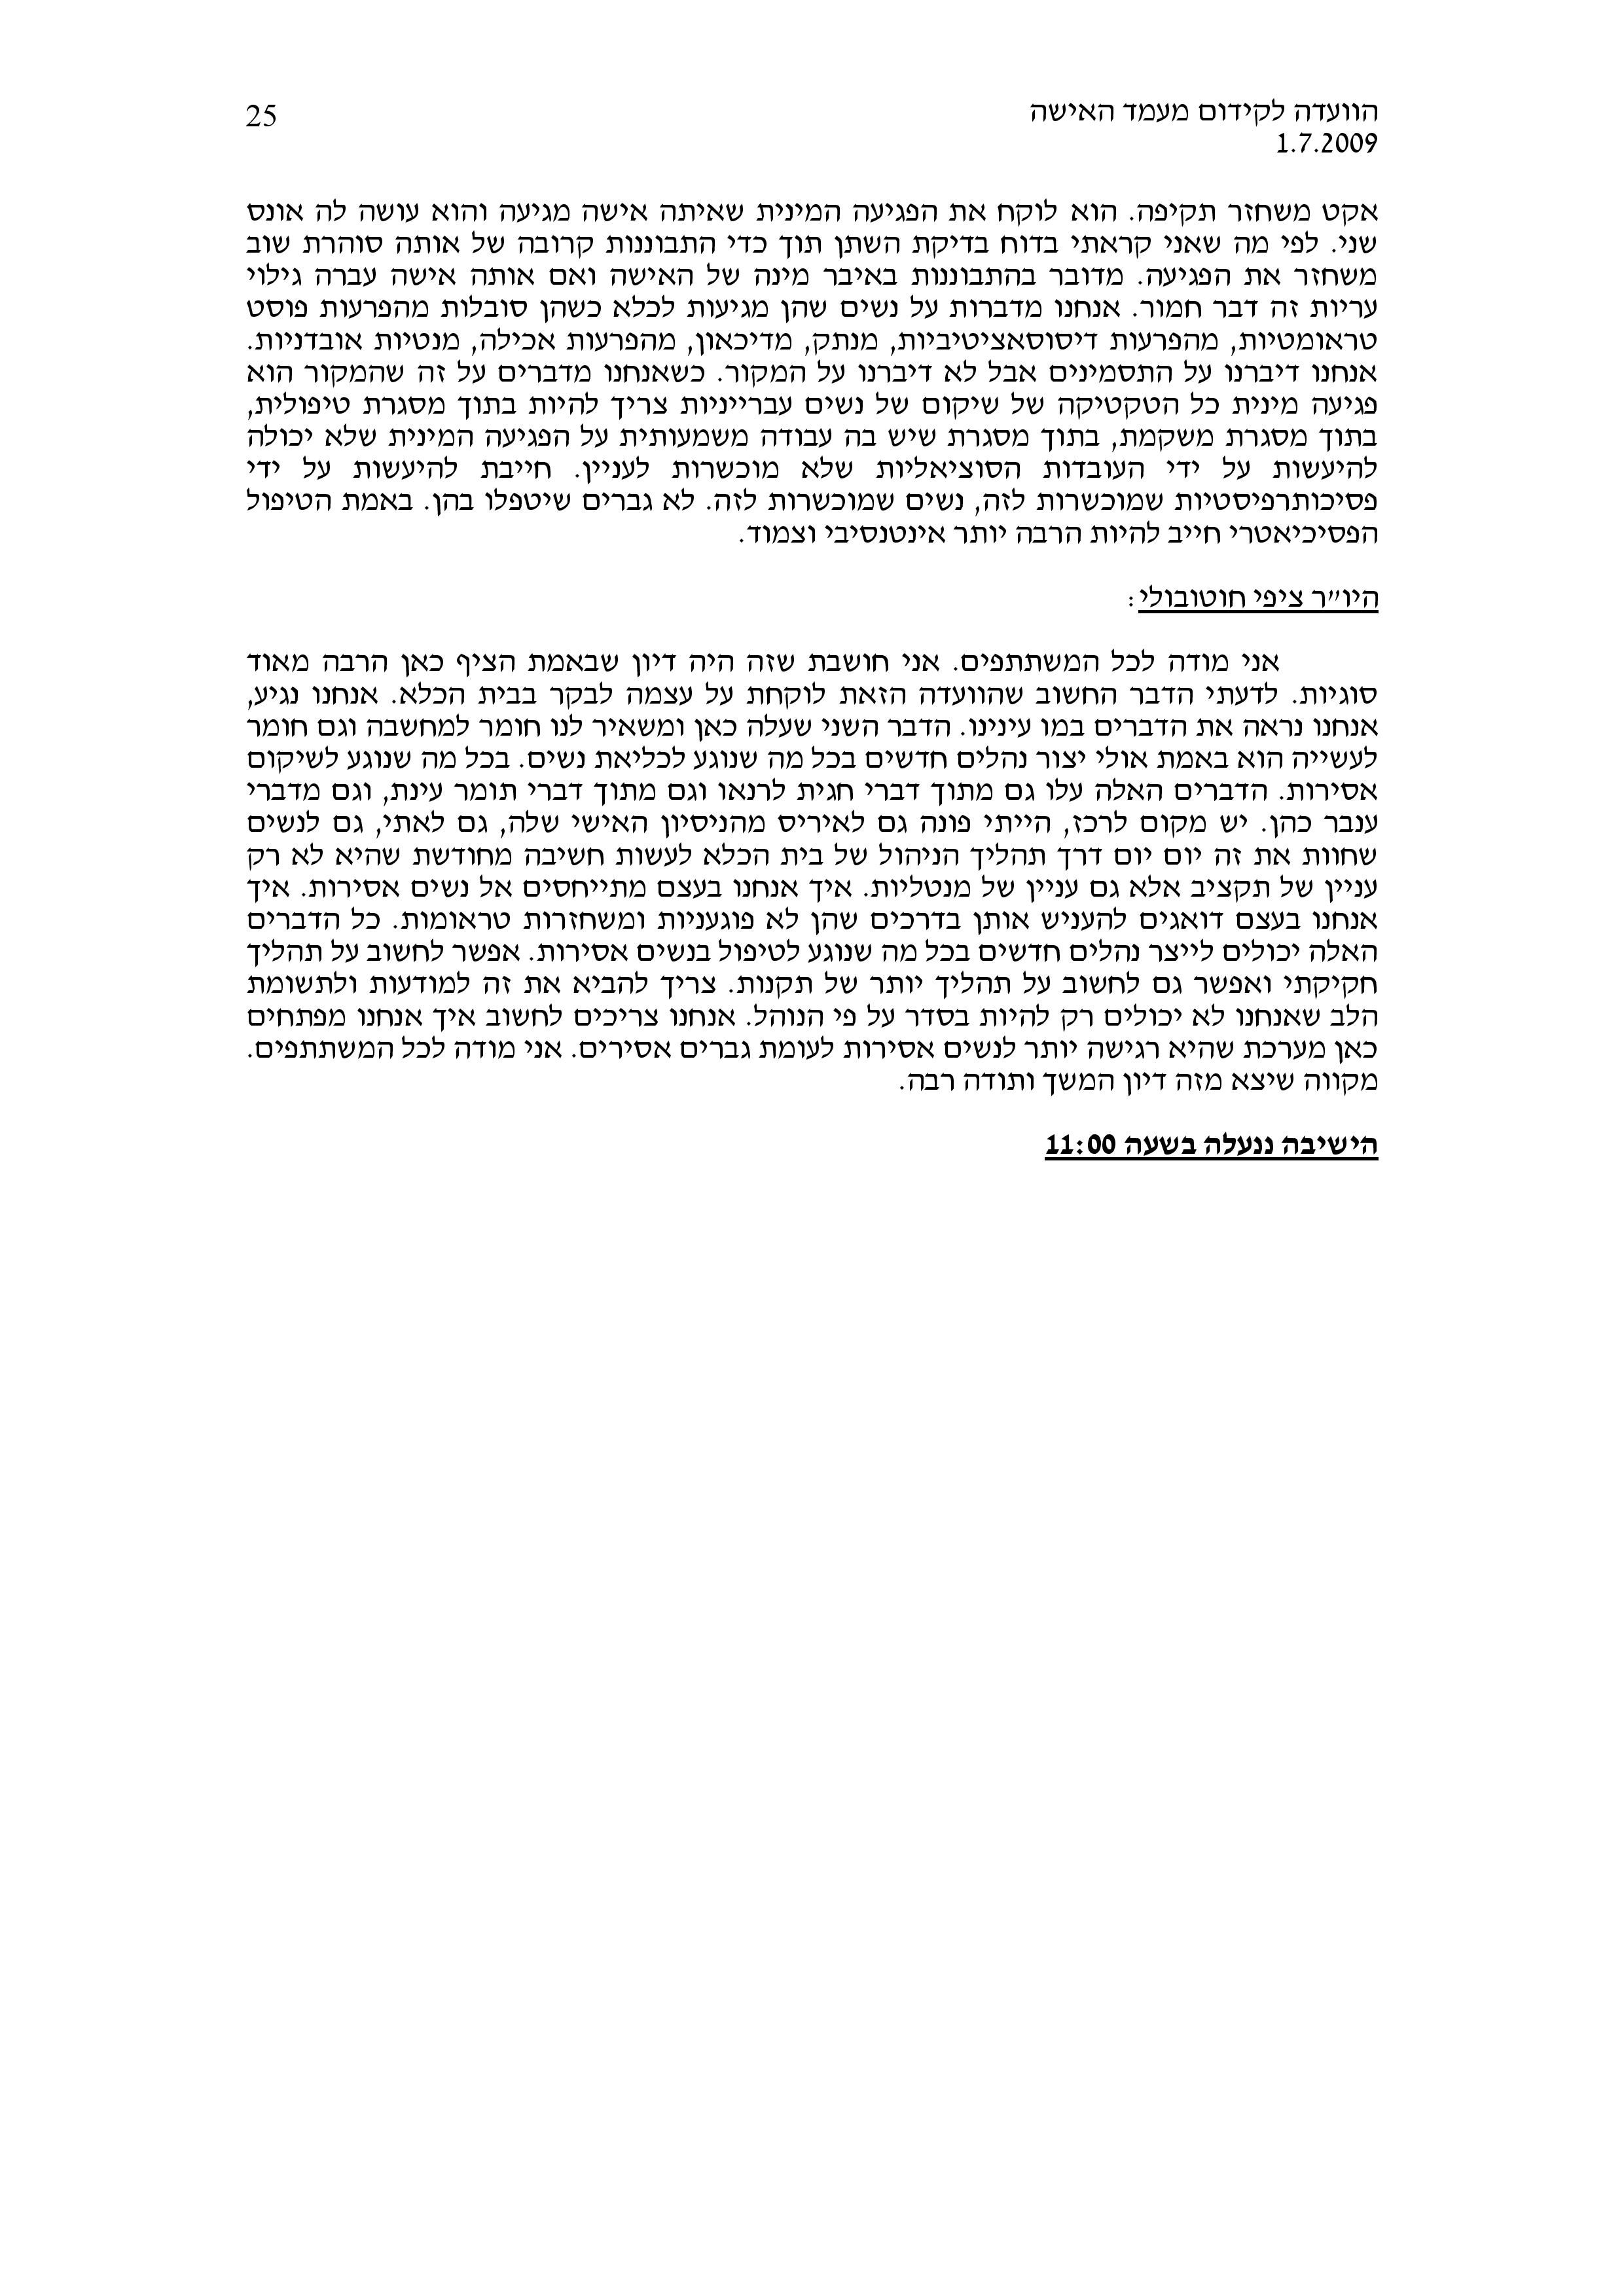 Document-page-025